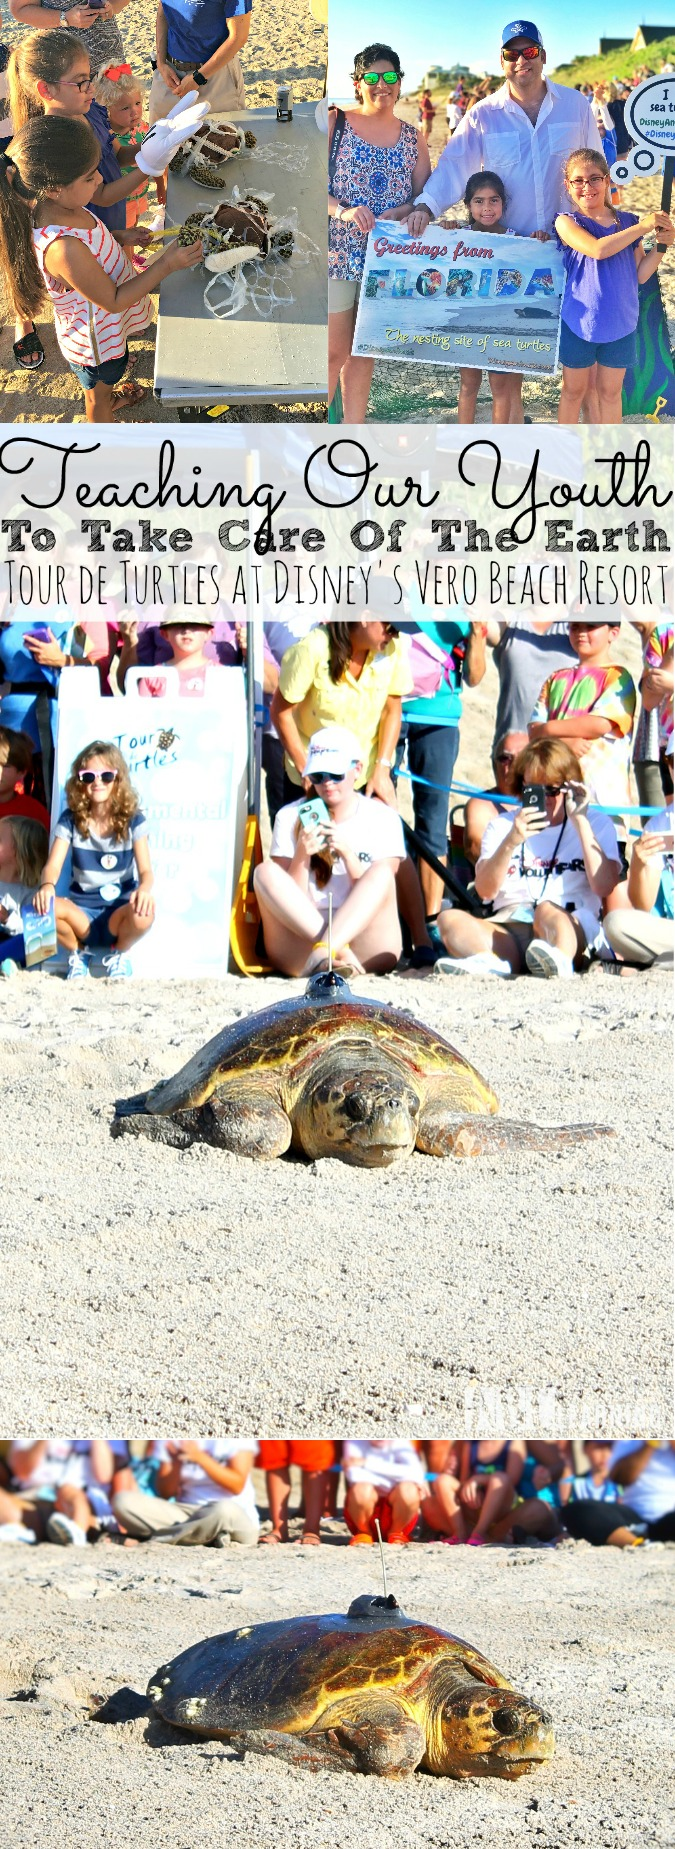 Tour de Turtles Event At Vero Beach